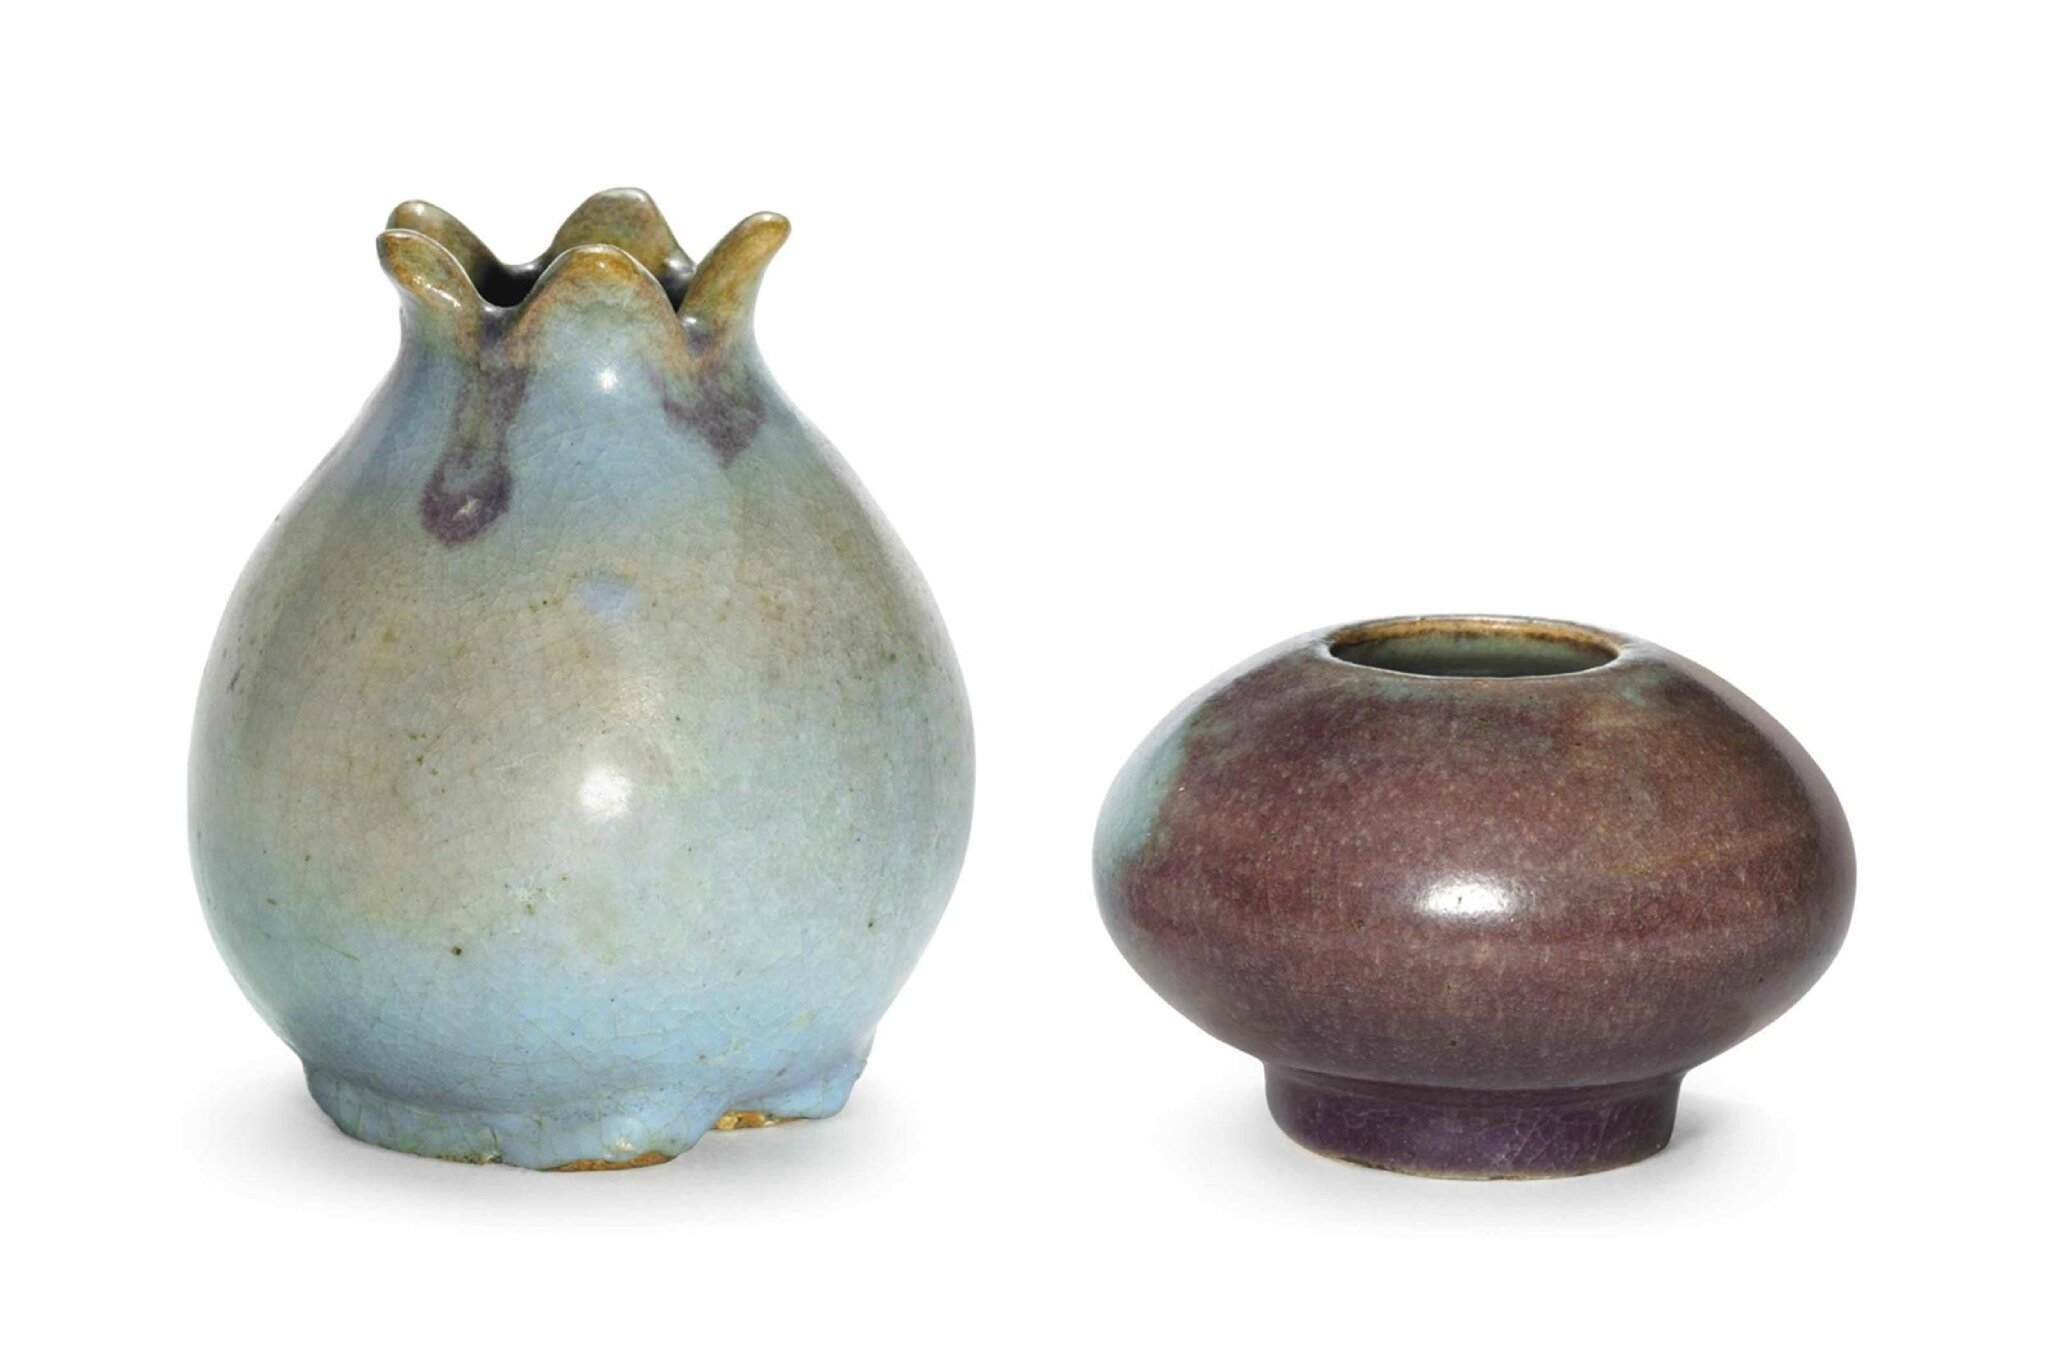 Two small 'Ma Jun' water pots, Ming dynasty (1368-1644) or later